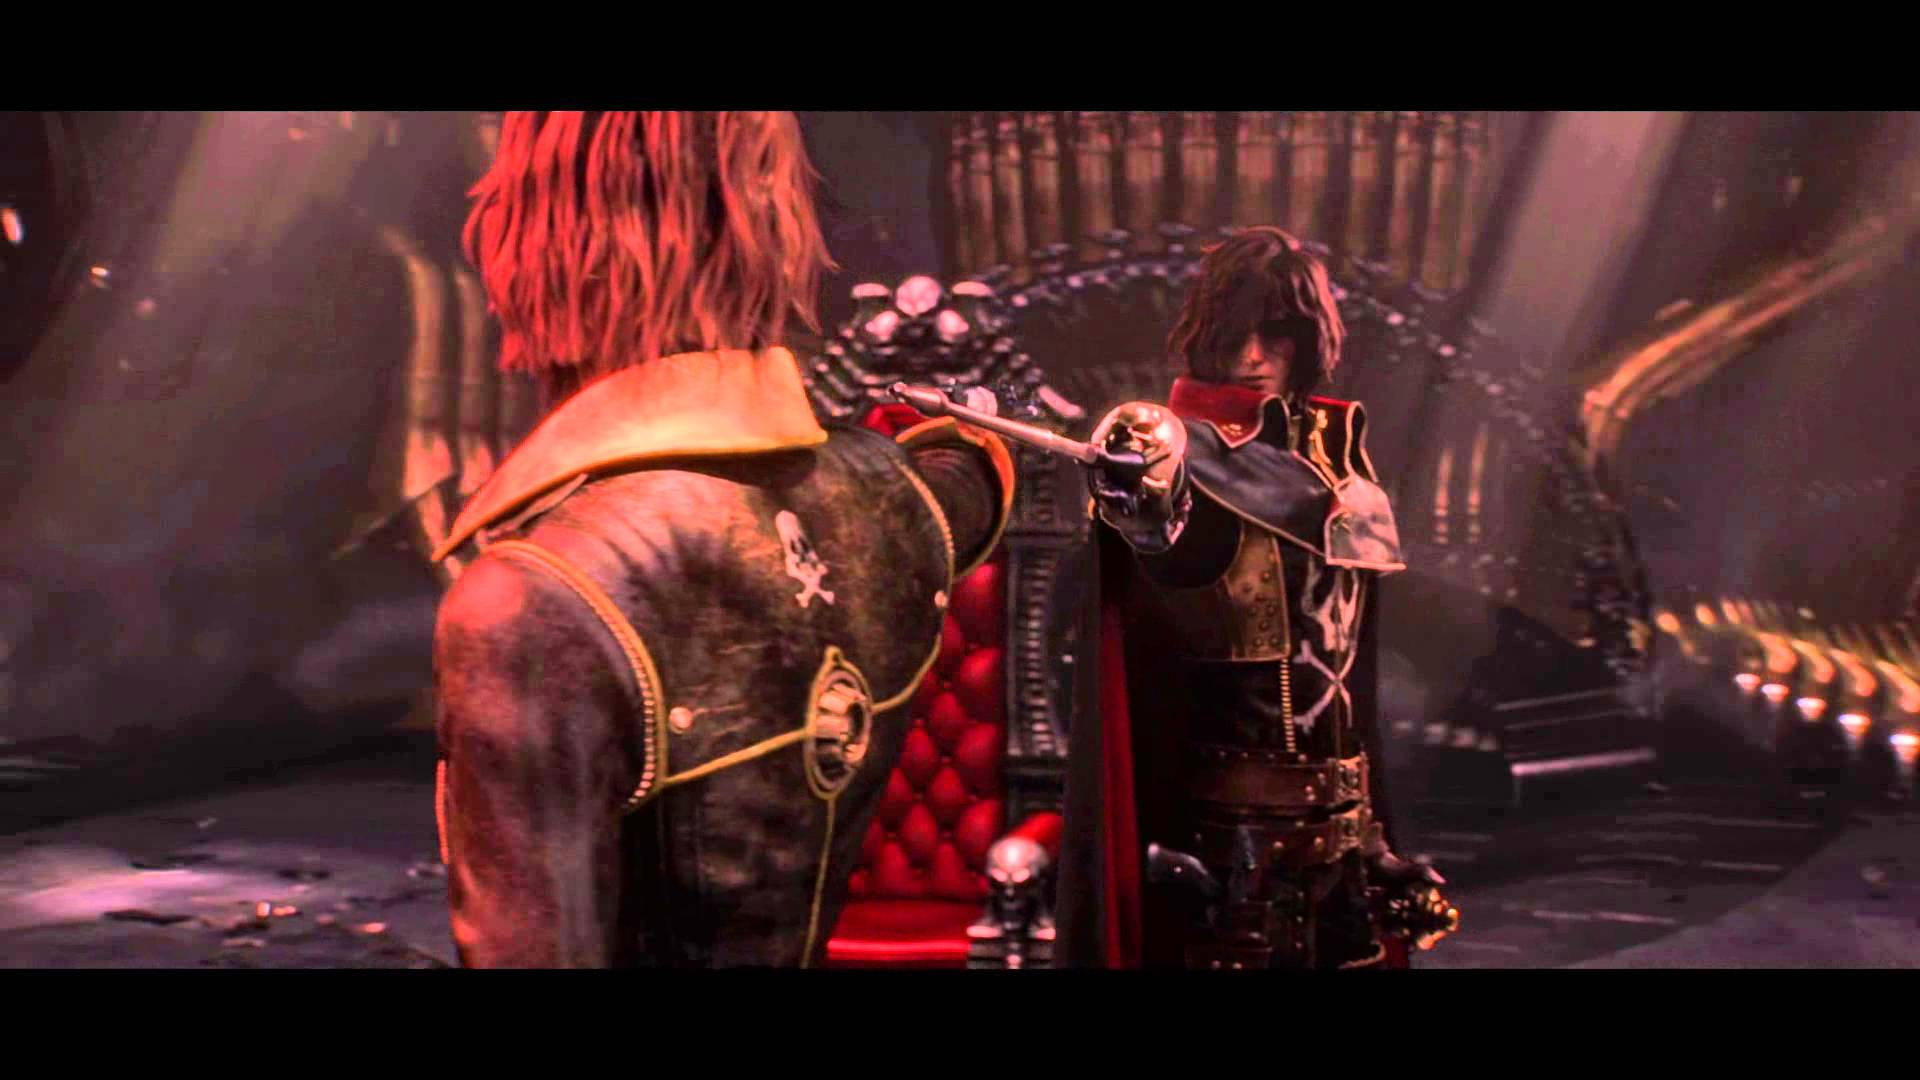 Images of Space Pirate Captain Harlock | 1920x1080